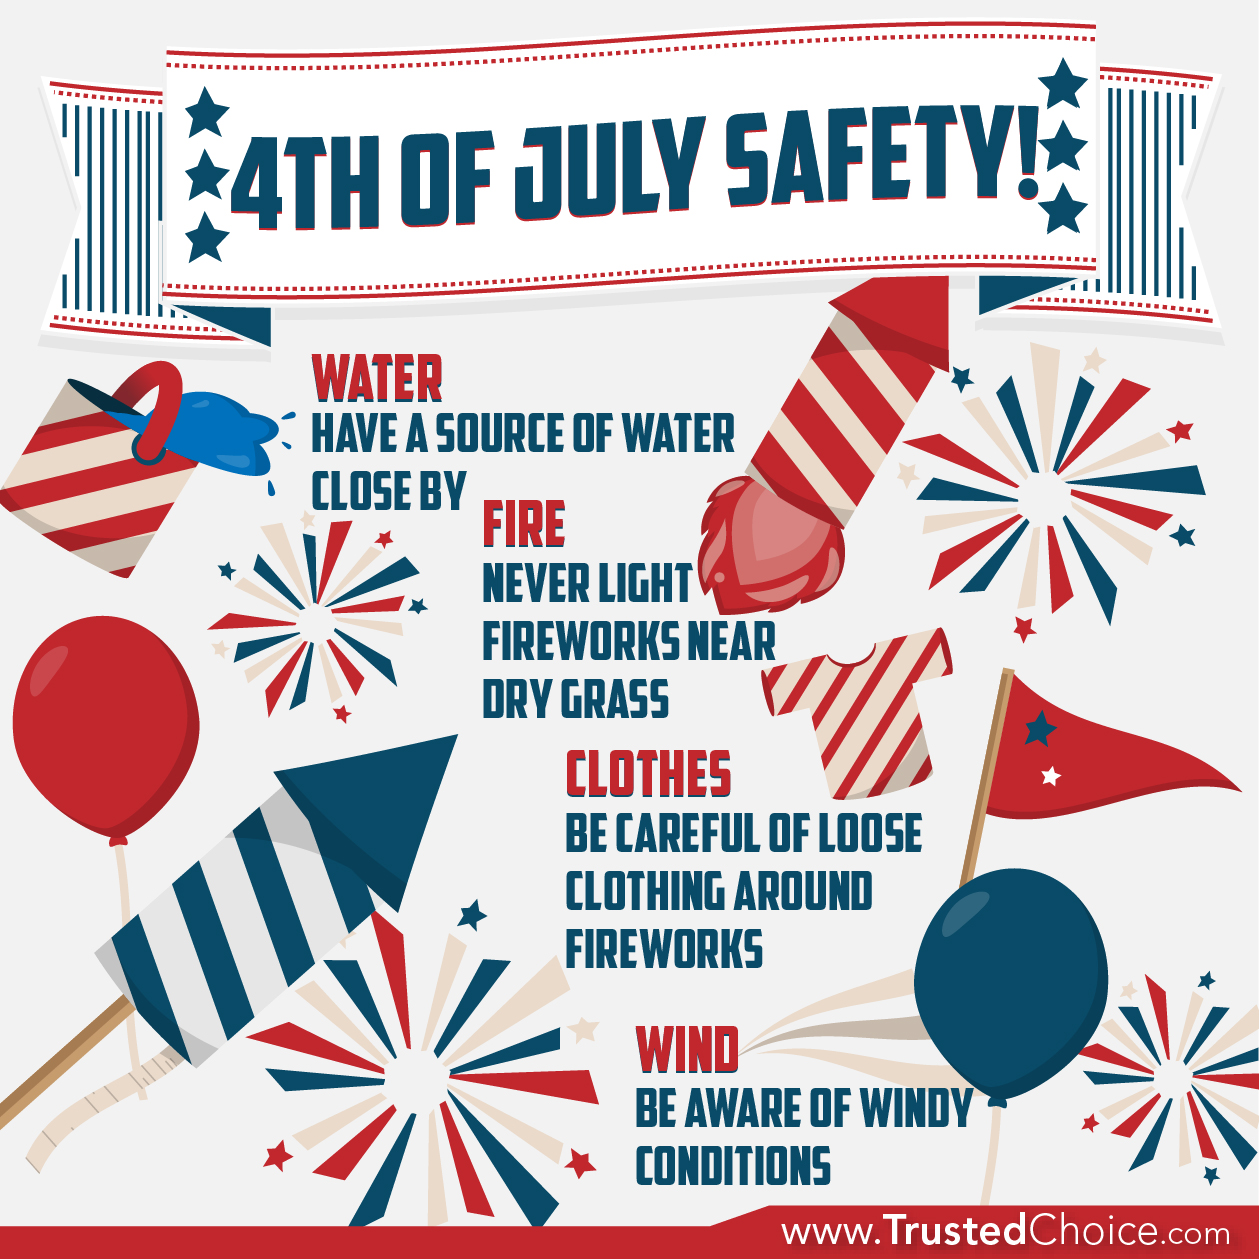 Fireworks Safety to Maximize Holiday Enjoyment